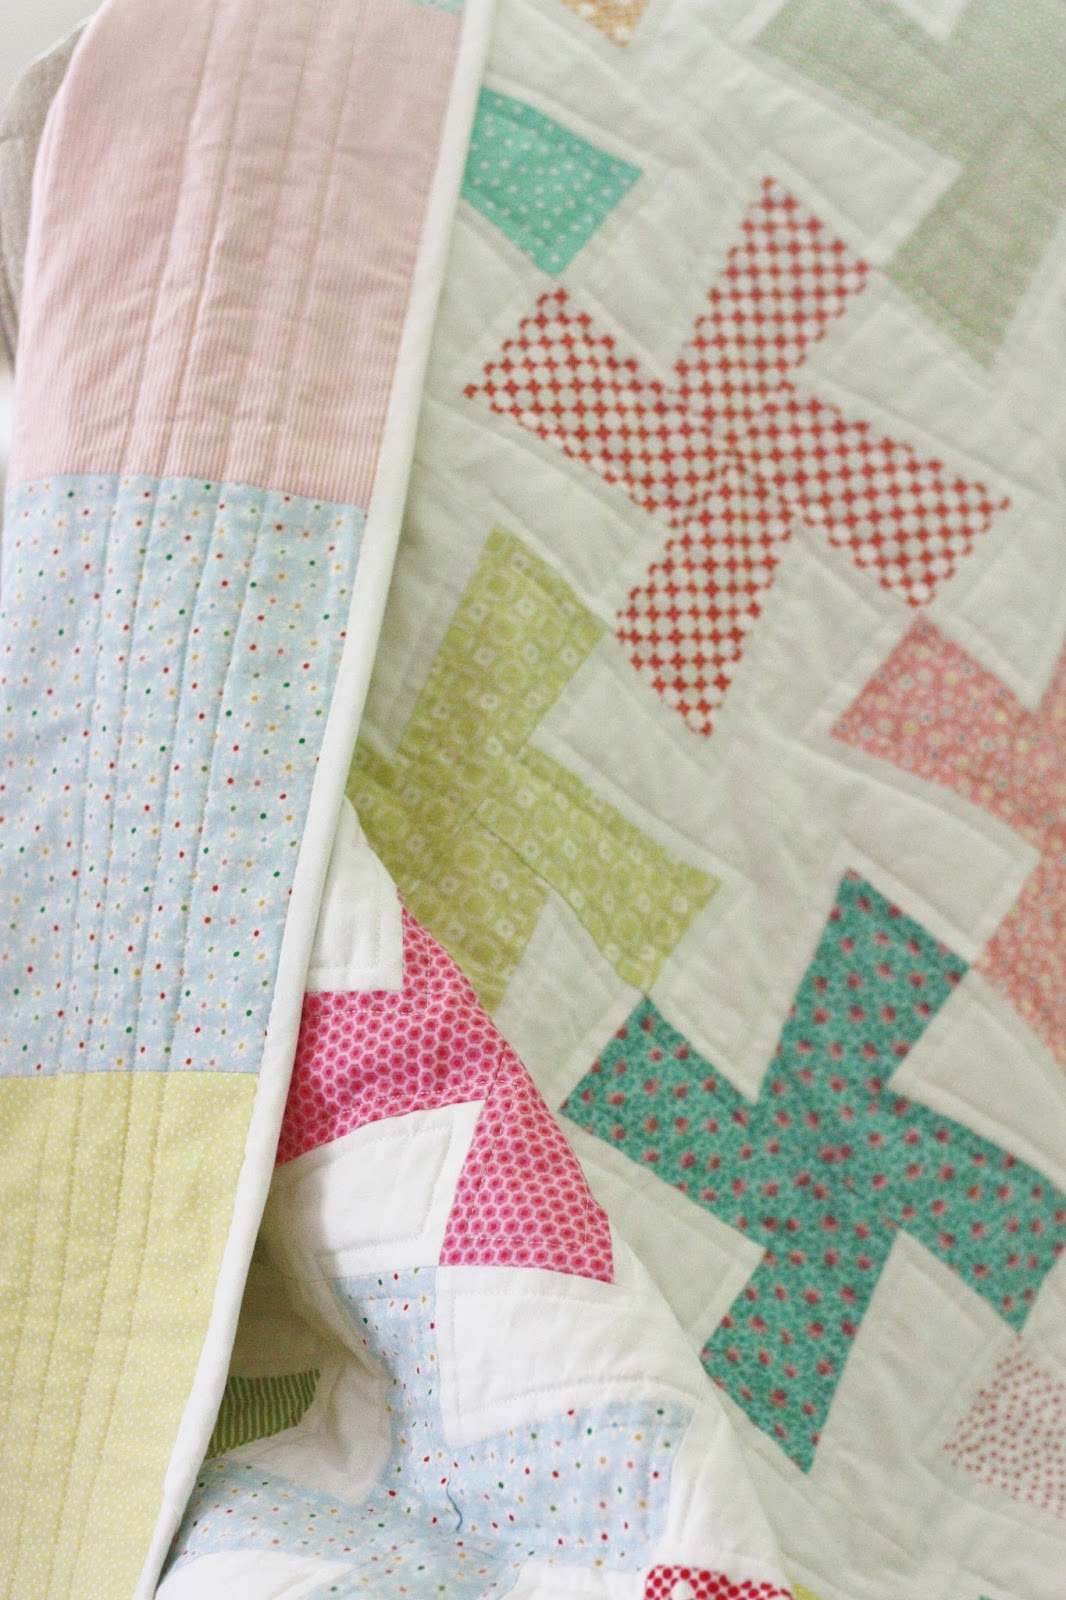 http://mysweetbamboo.blogspot.com/2014/10/zaras-quilt-finished.html